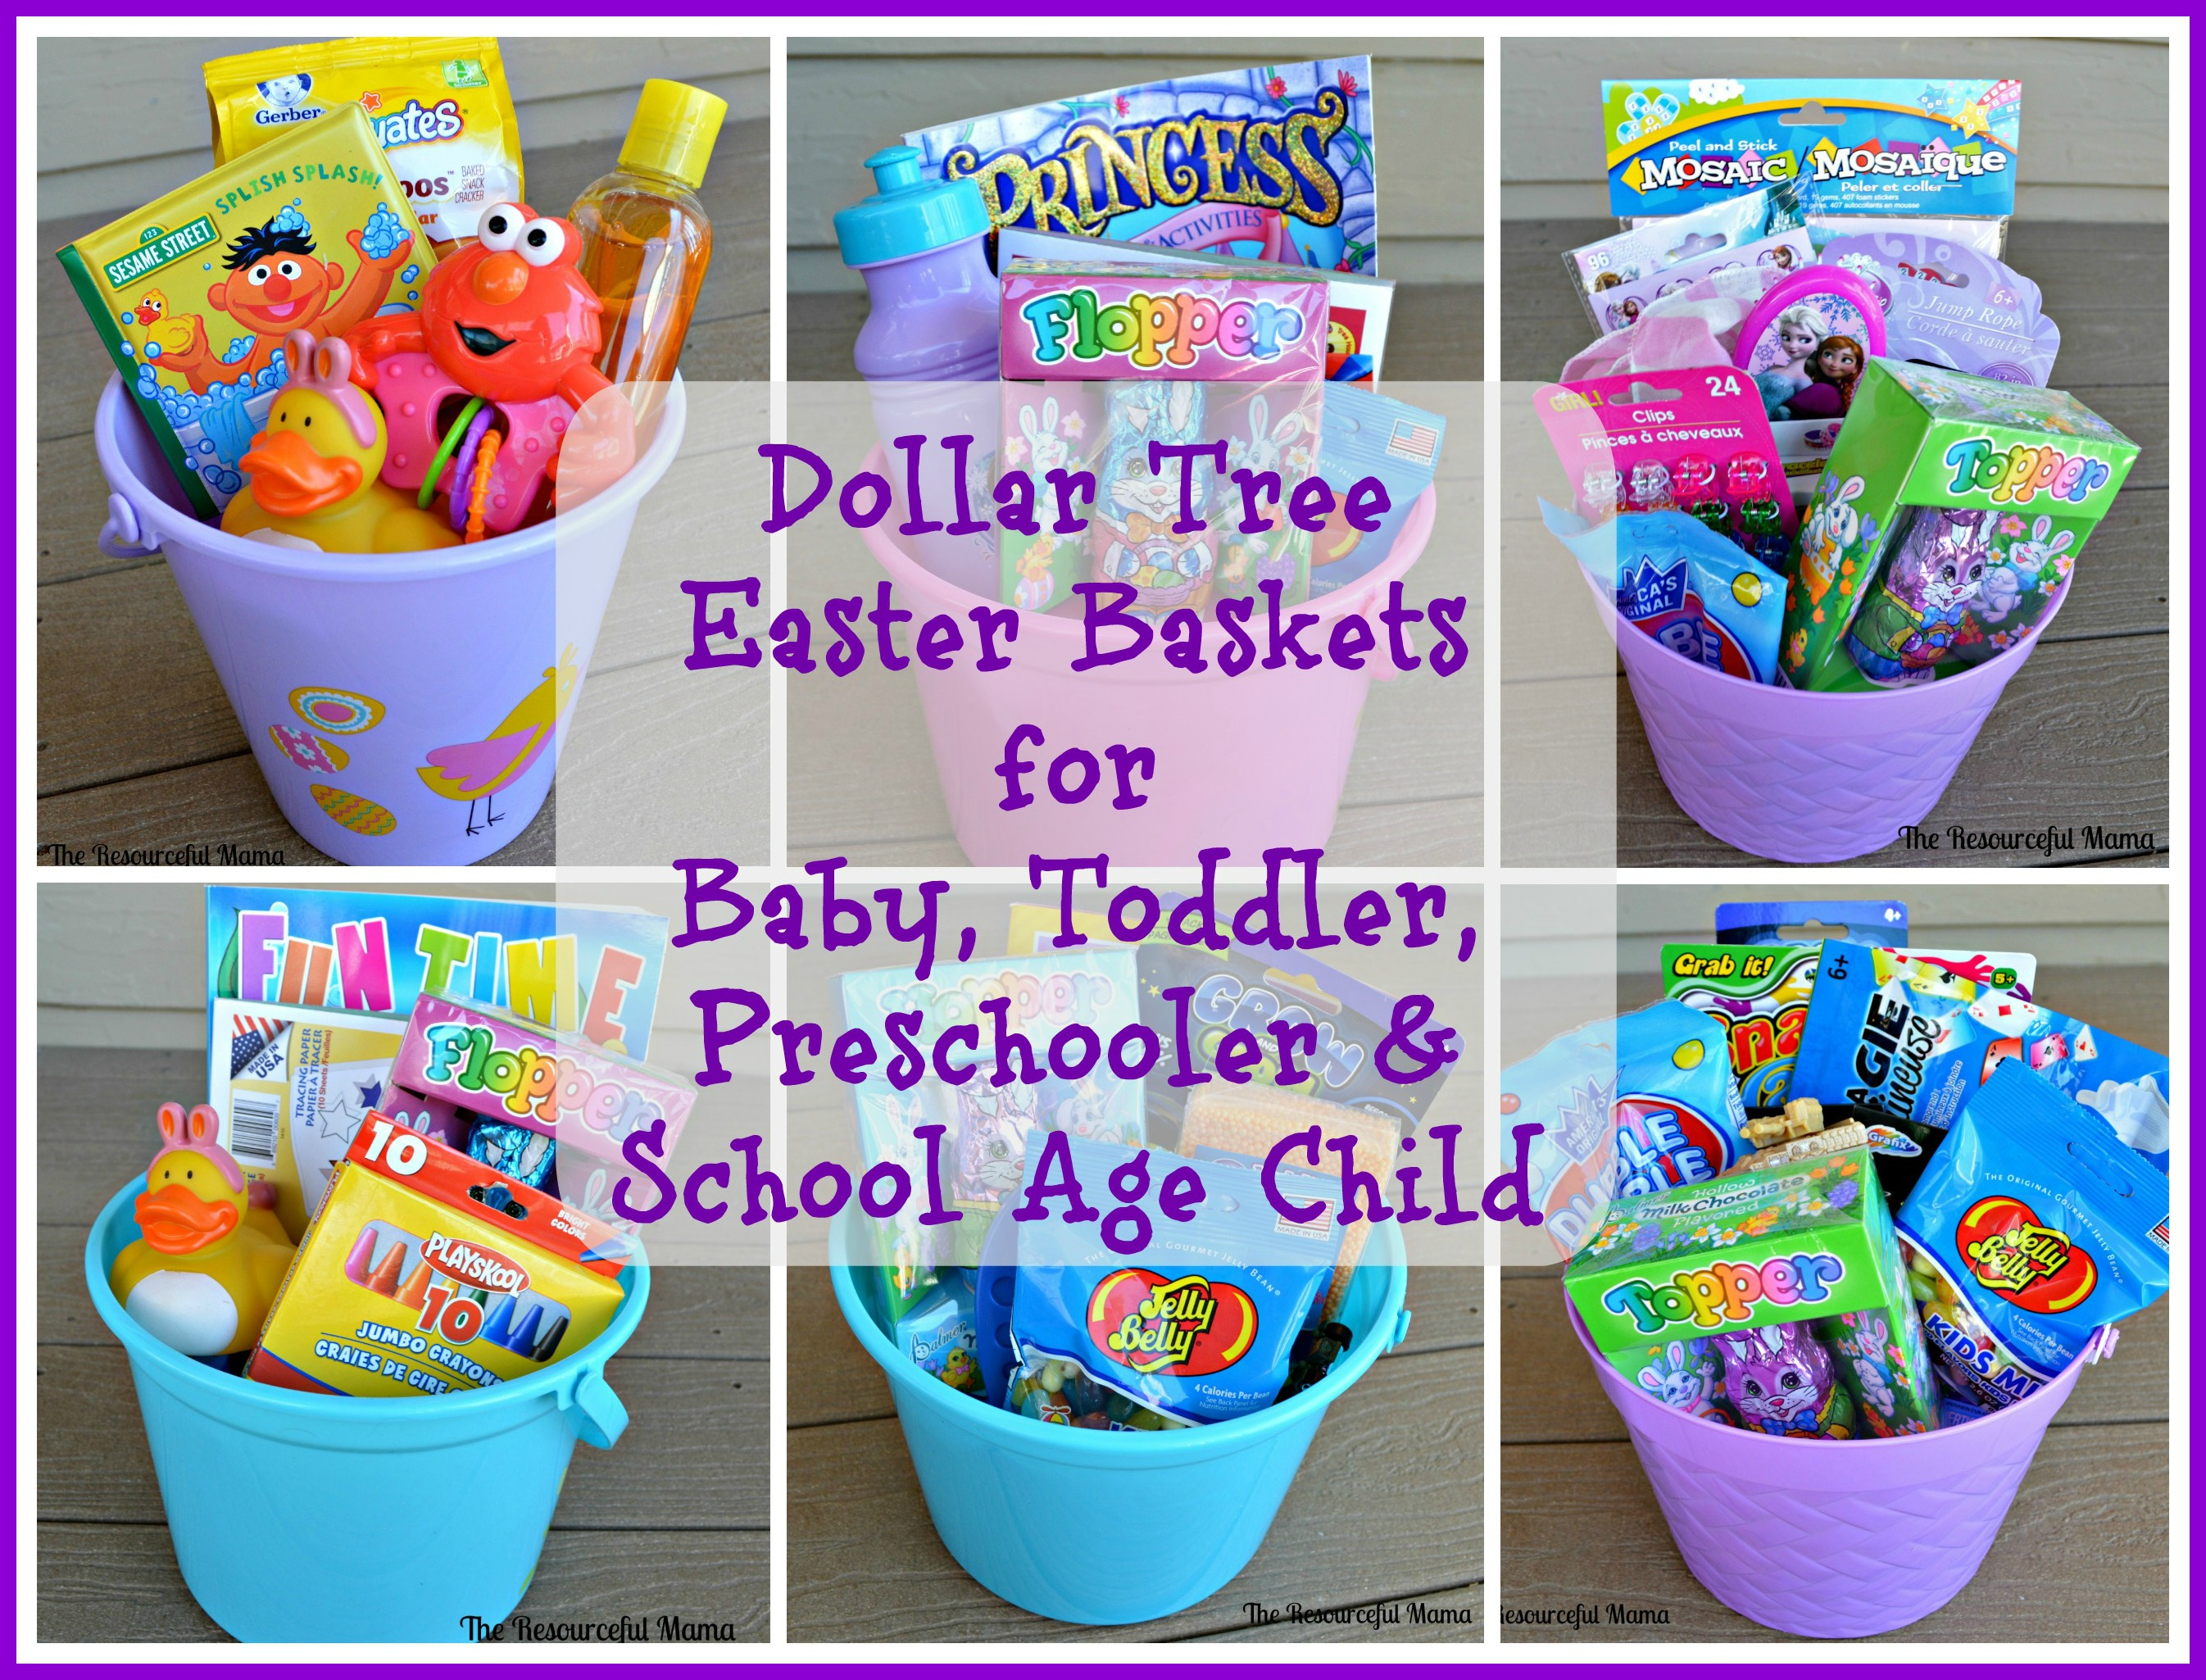 Dollar tree easter baskets the resourceful mama dollar tree easter basket for baby toddler preschooler school age child negle Gallery